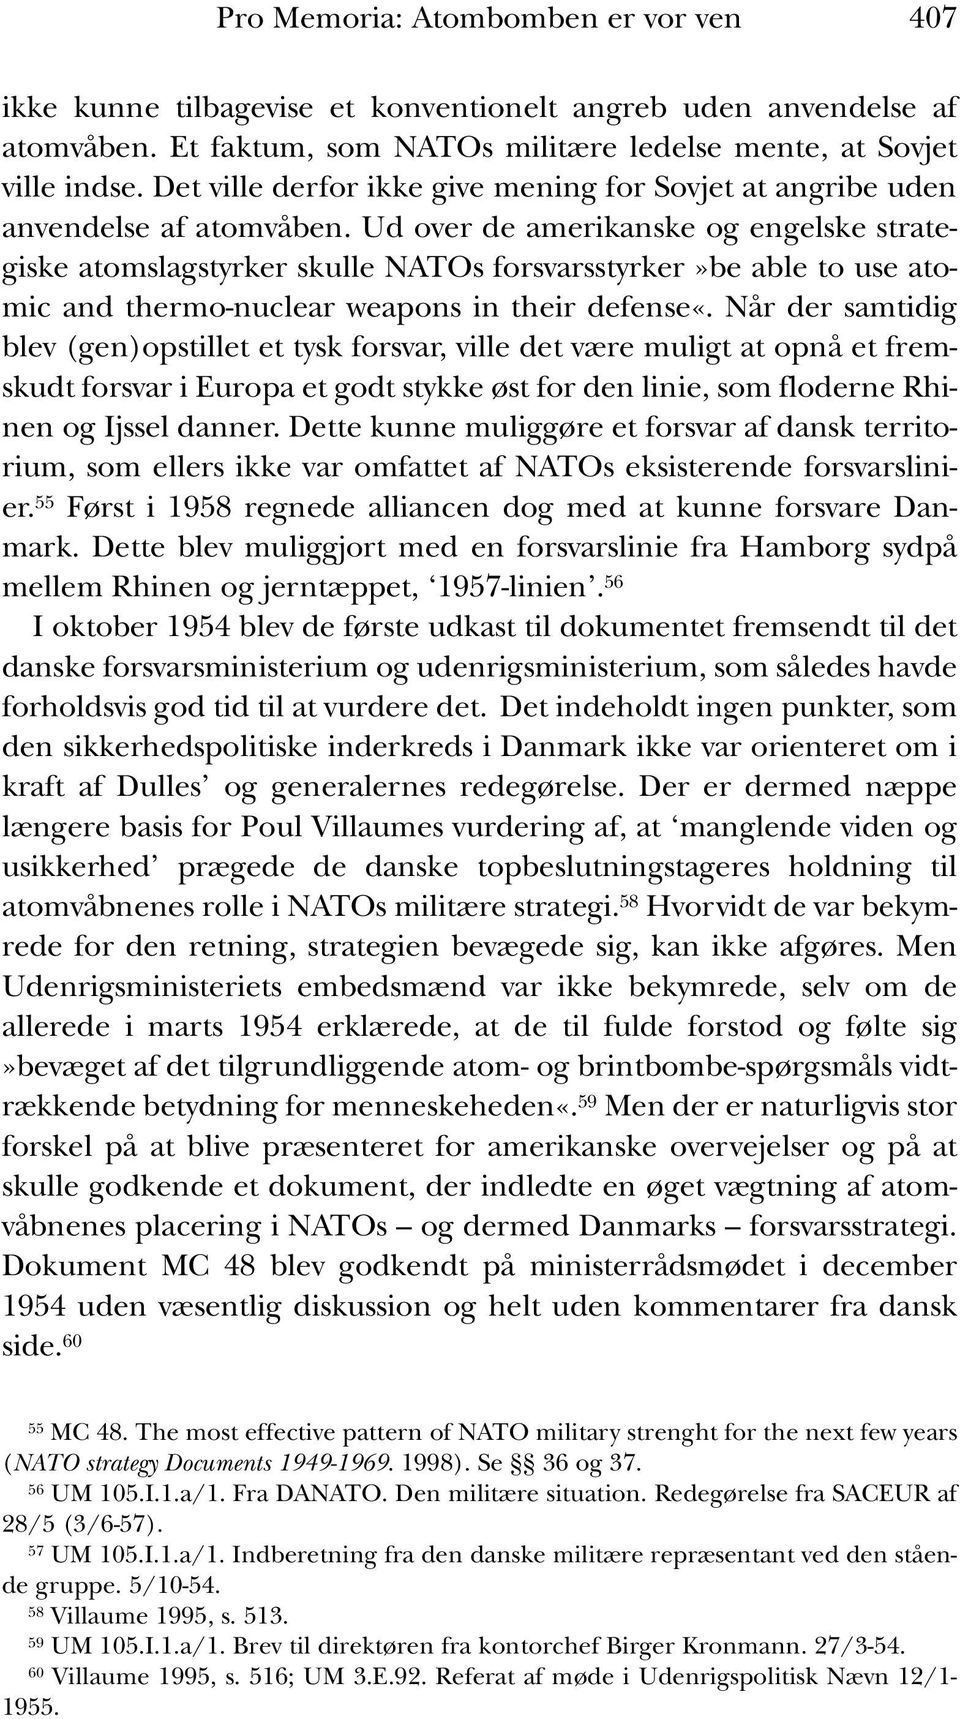 Ud over de amerikanske og engelske strategiske atomslagstyrker skulle NATOs forsvarsstyrker»be able to use atomic and thermo-nuclear weapons in their defense«.